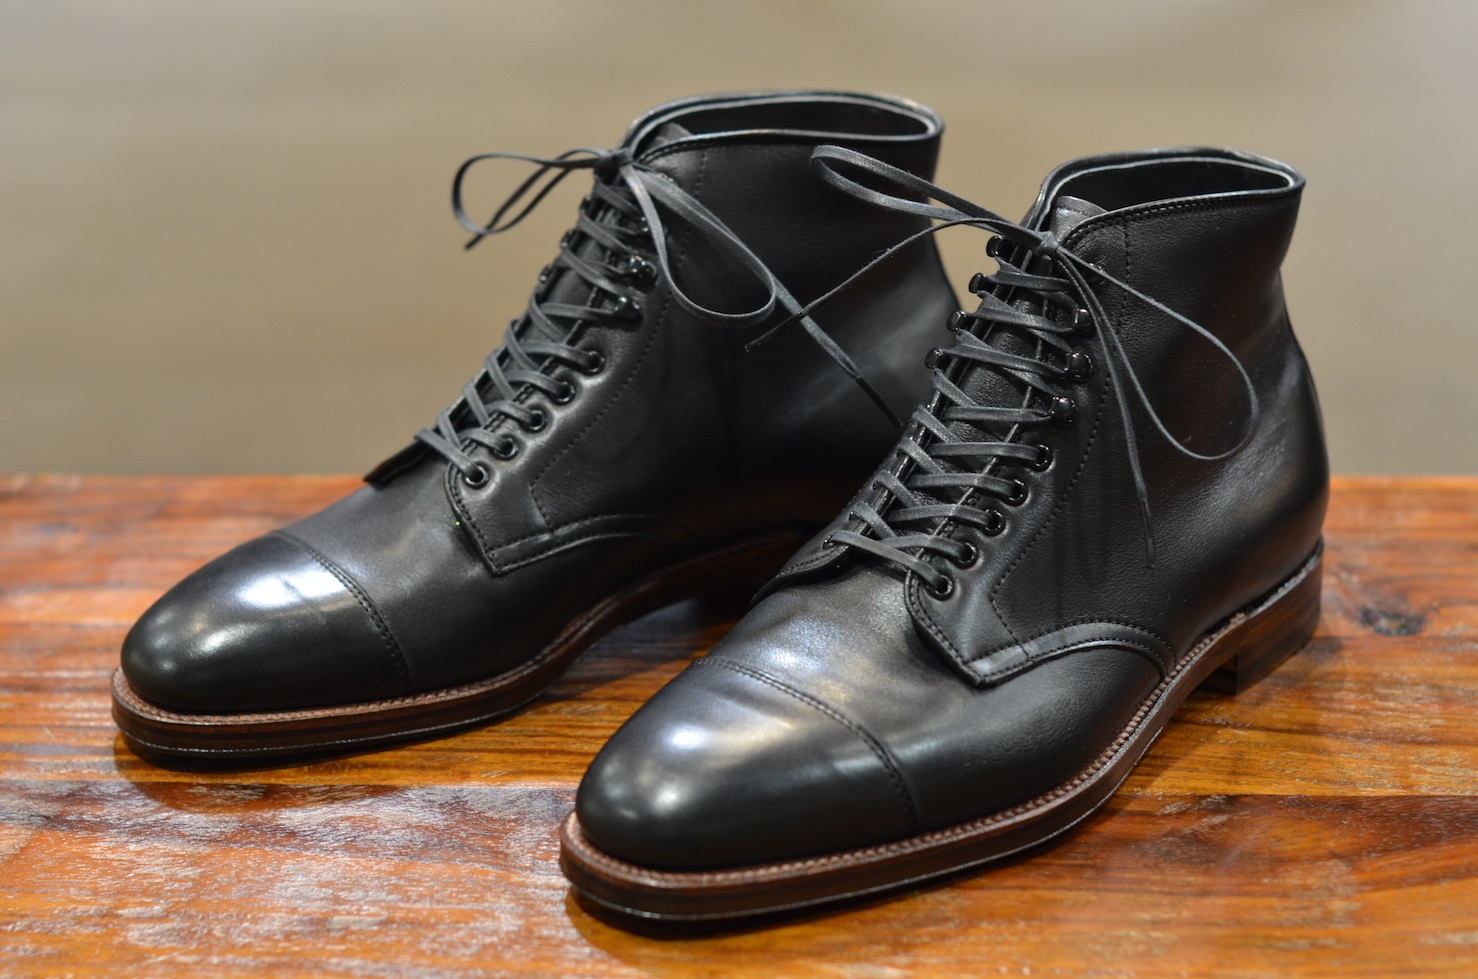 Alden shoes plaza cap toe boot in black calf lsw for The alden